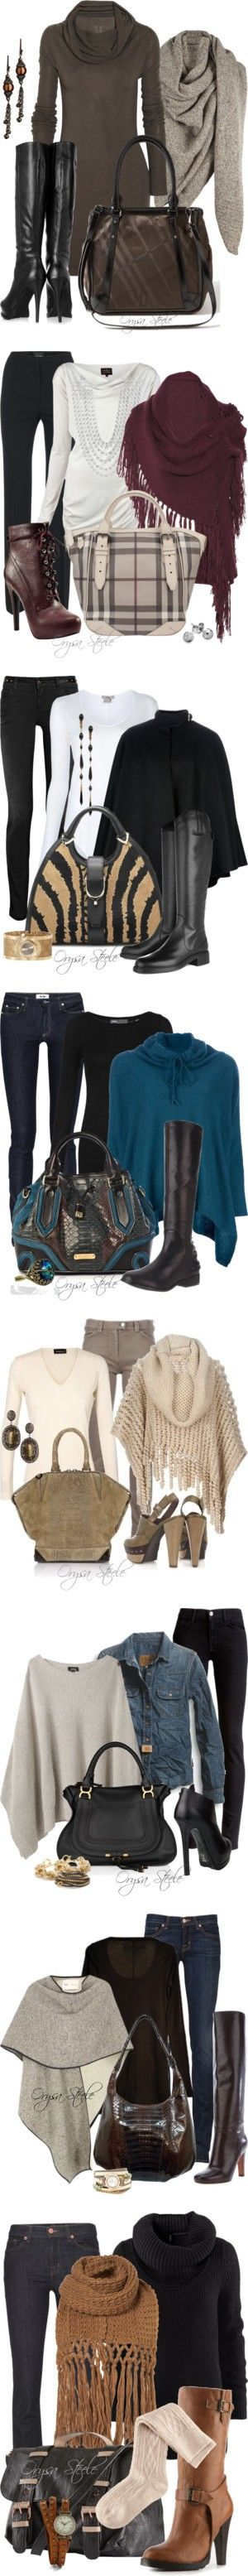 A Shawl for Fall by orysa on Polyvore featuring AllSaints, Rick Owens, DKNY, Burberry, Avindy, nordstrom allsaints, Piazza Sempione, Vivienne Westwood Anglomania, Bakers and Valentino